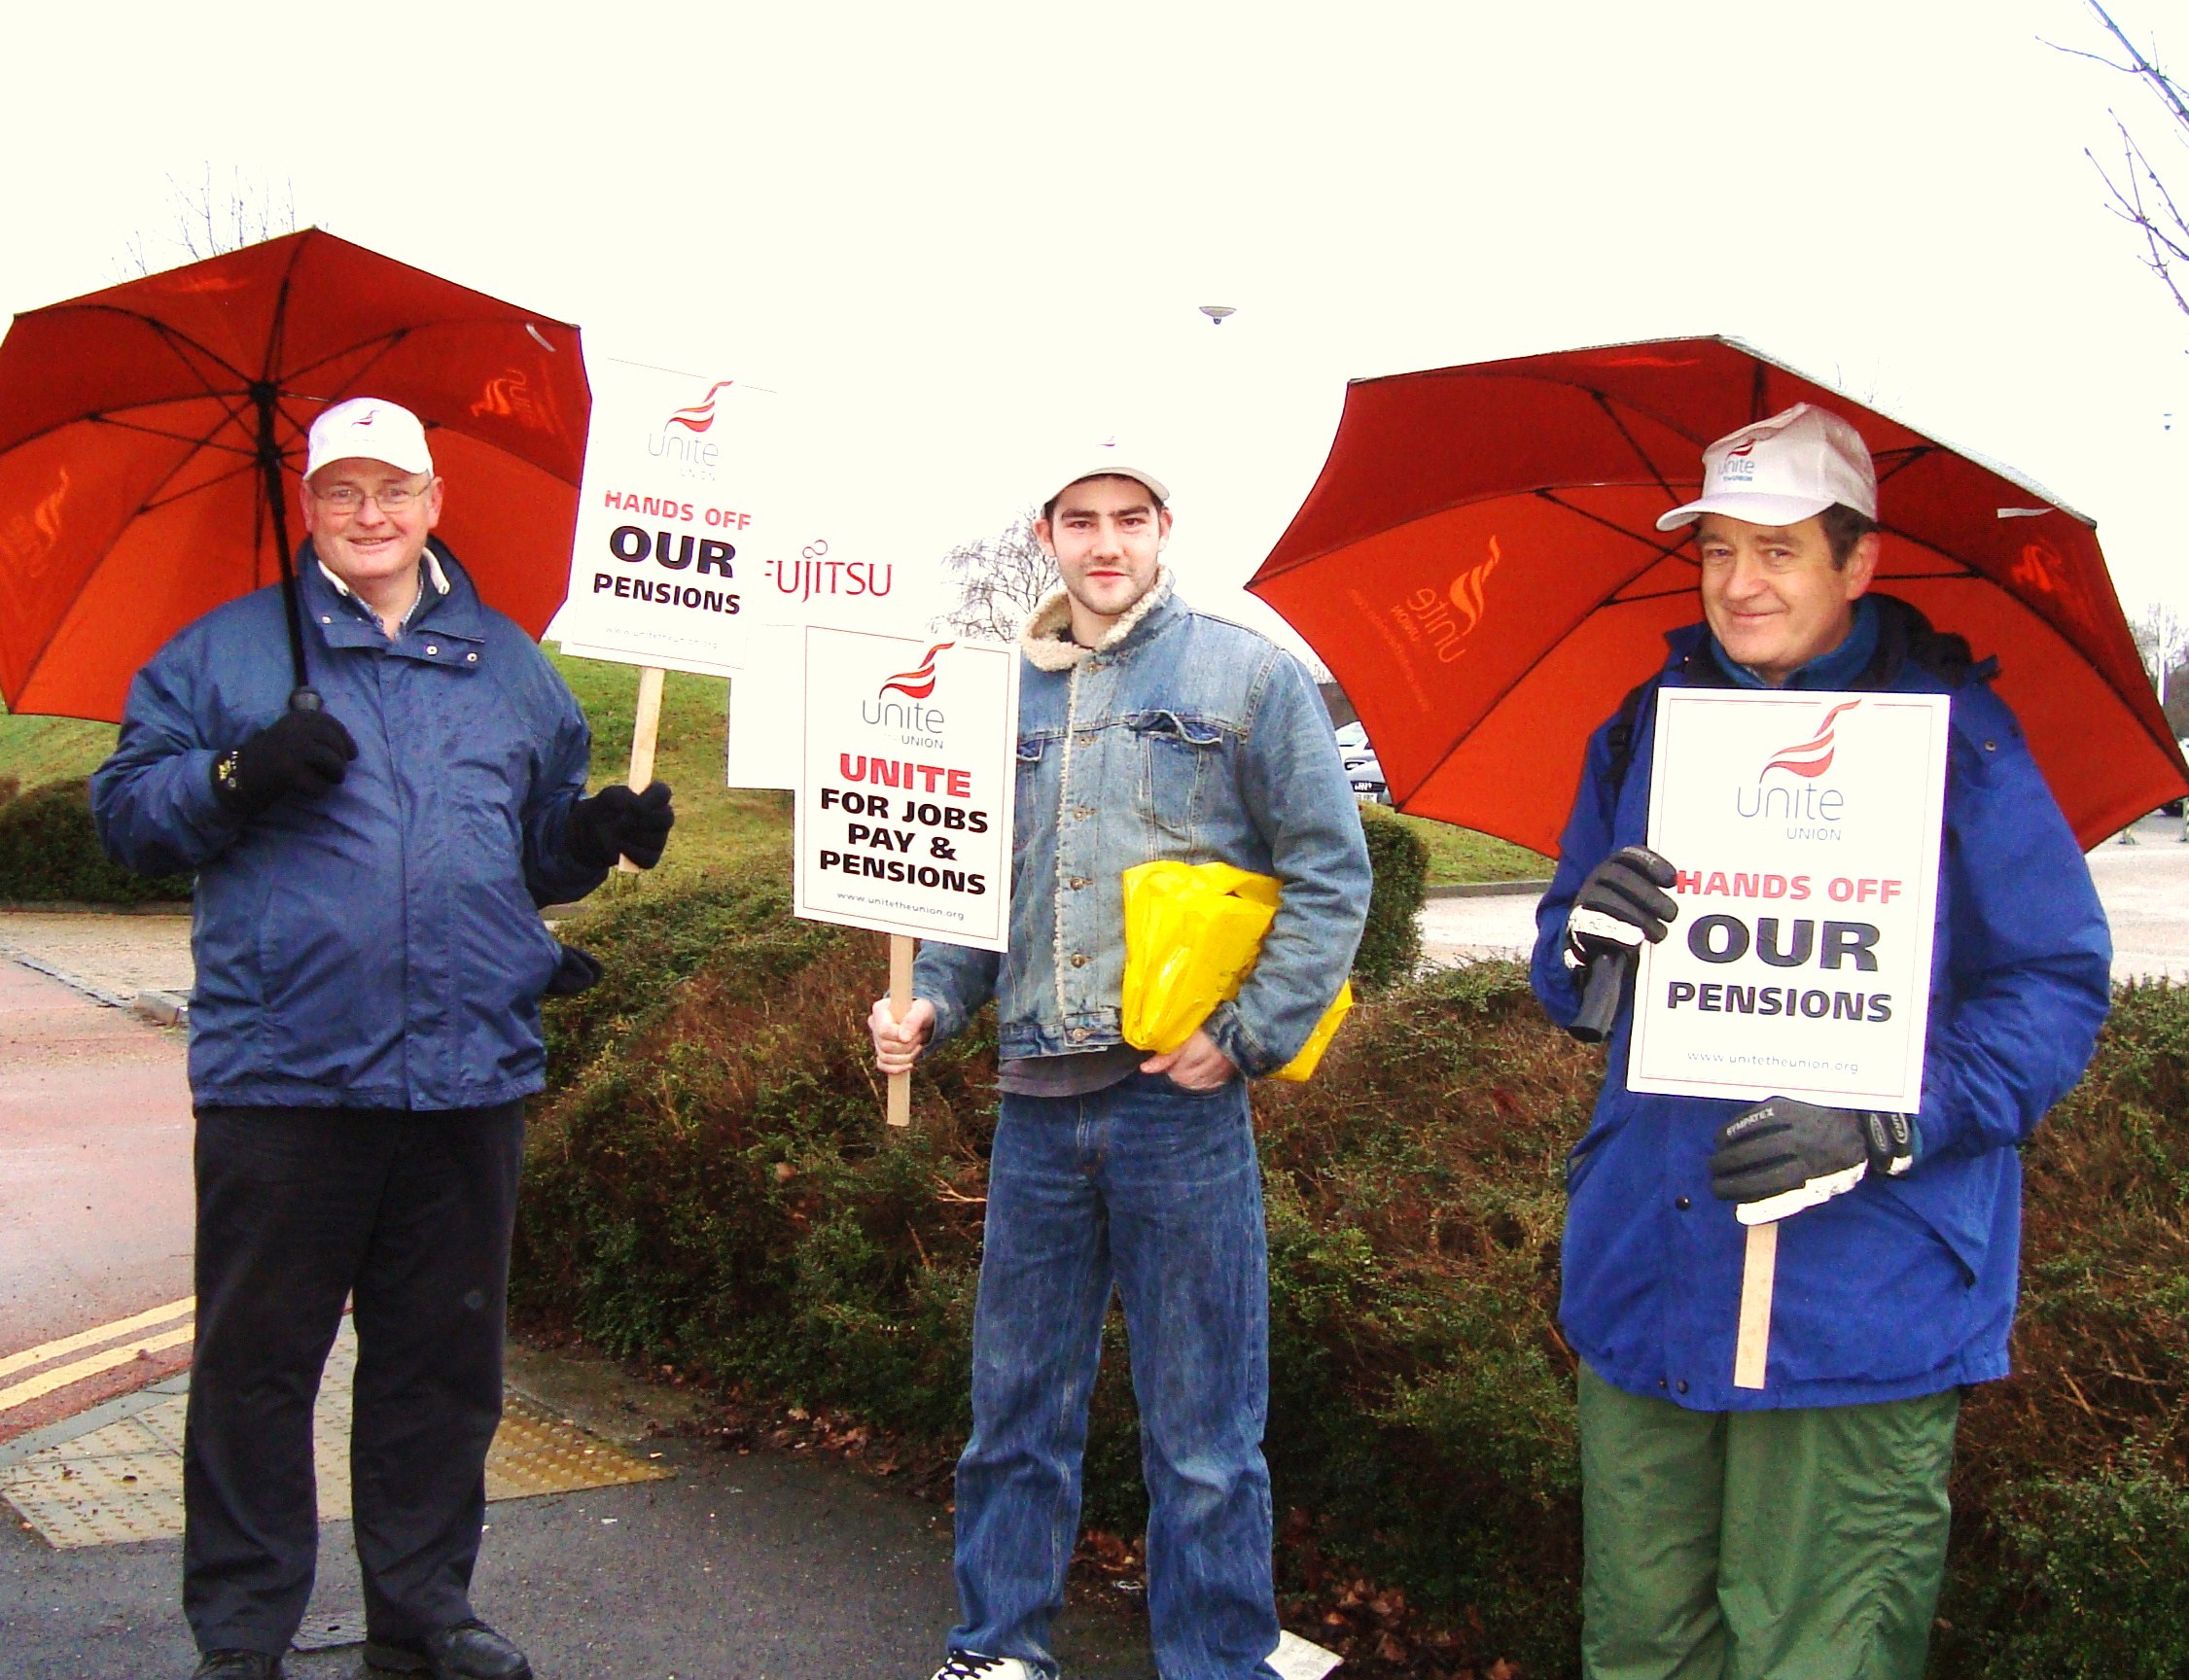 29.1.'10. Fujitsu Pay & Pensions Picket.JPG